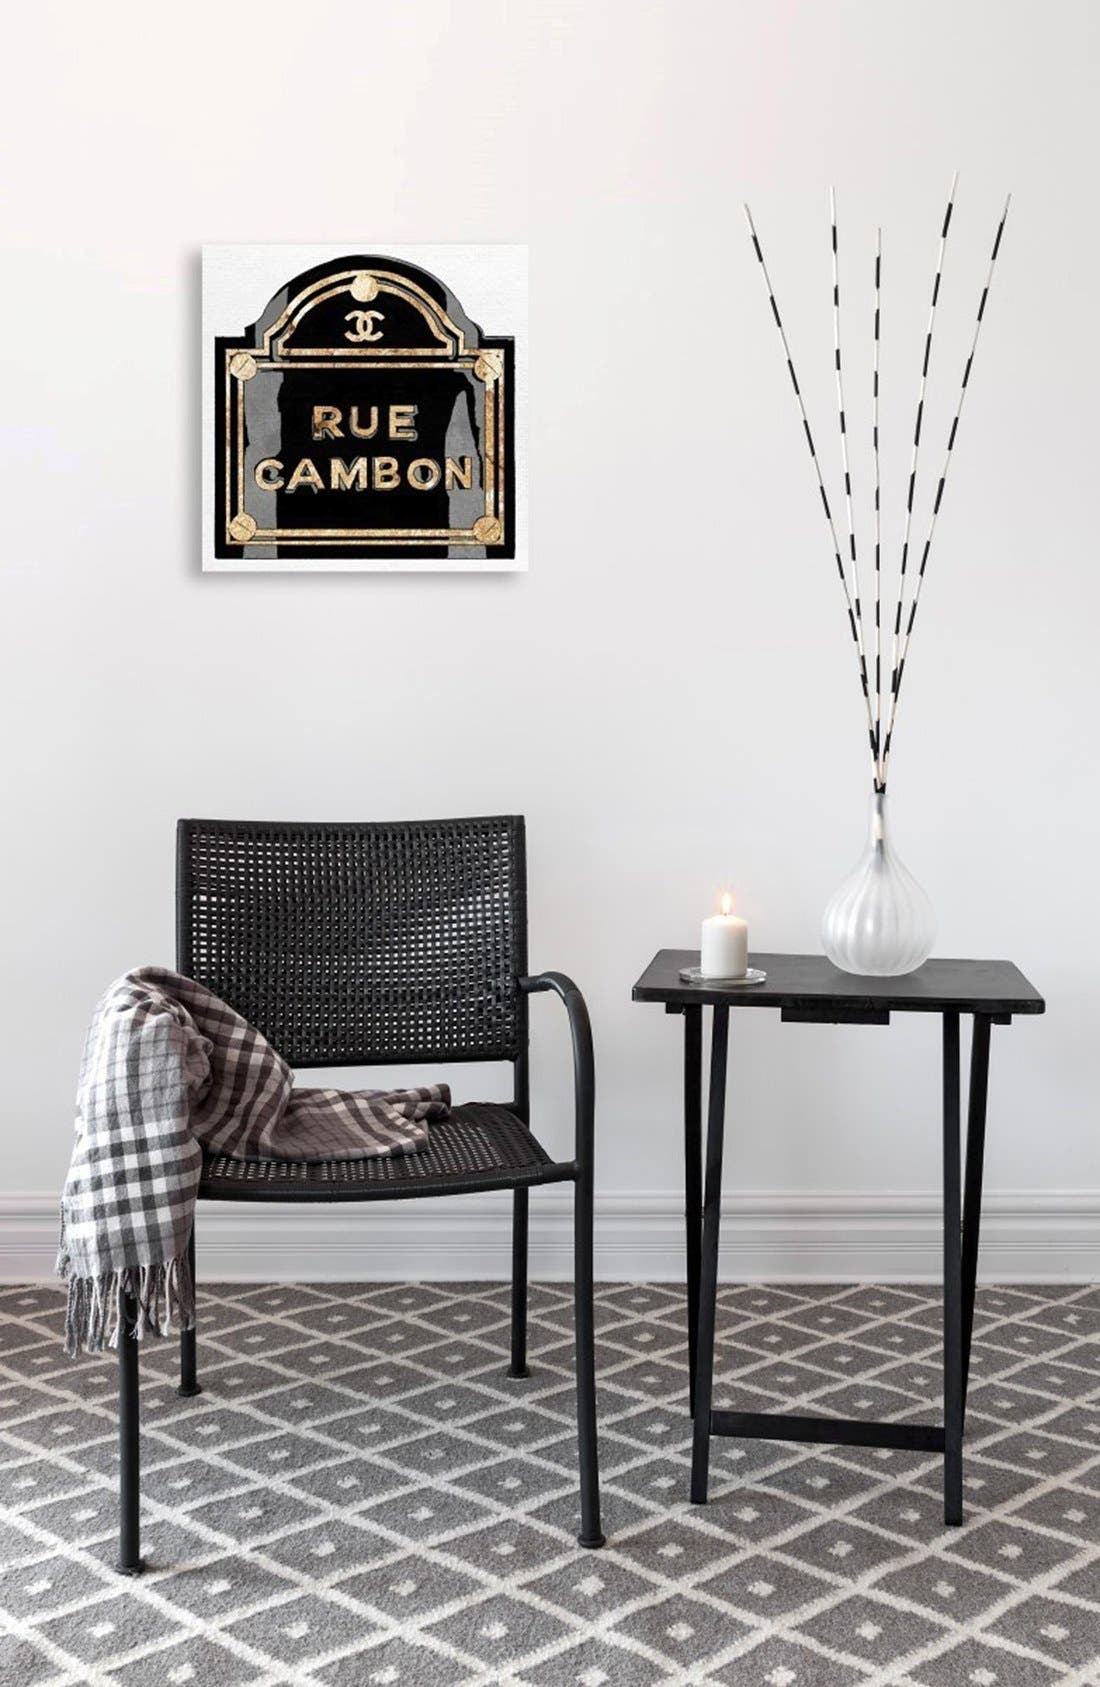 'Rue Cambon' Canvas Wall Art,                             Alternate thumbnail 2, color,                             White/ Black